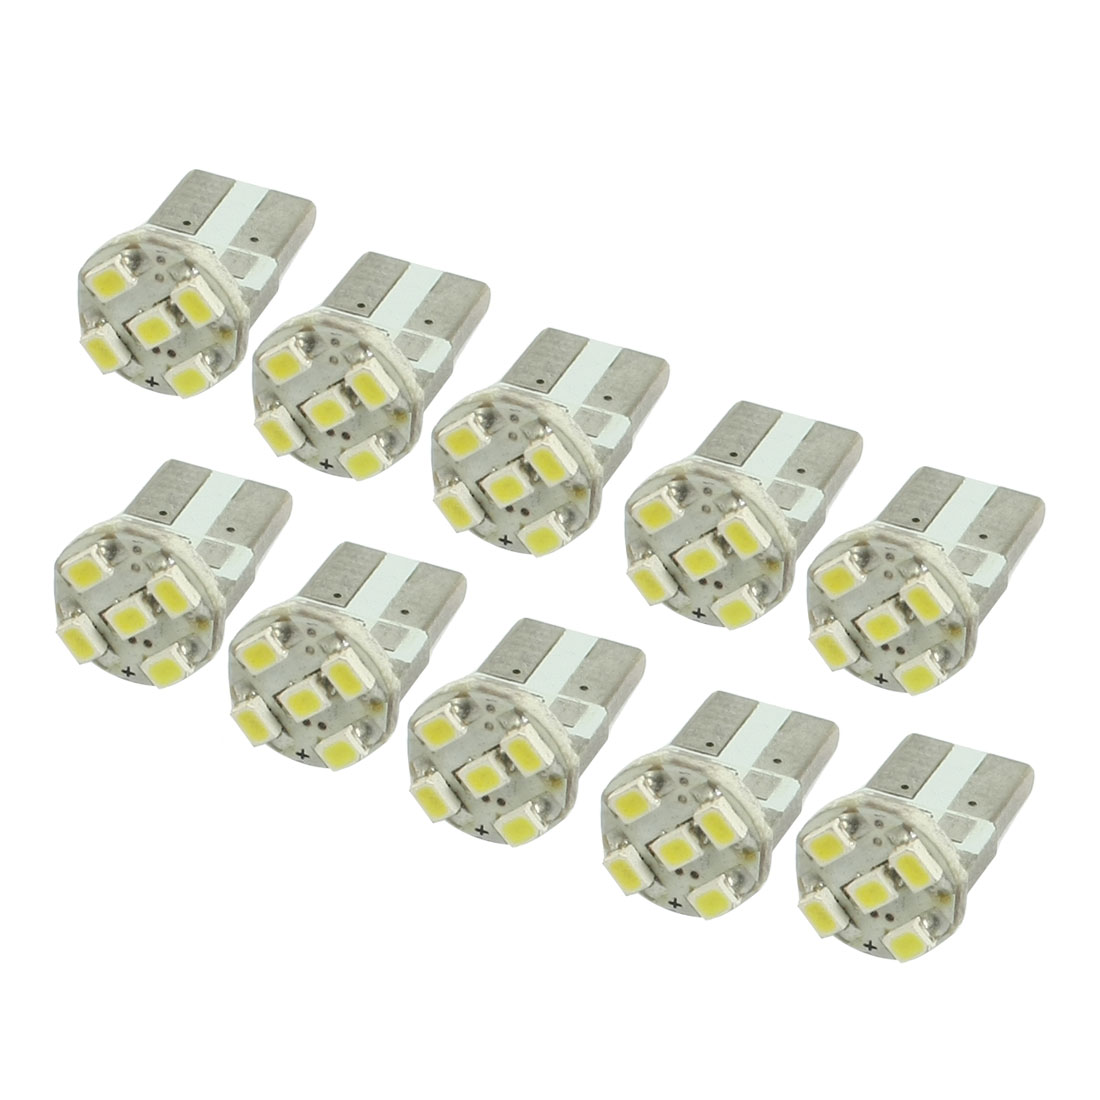 10 Pcs Auto T10 White 1206 5 SMD LED Bulb Light Turning Lamp